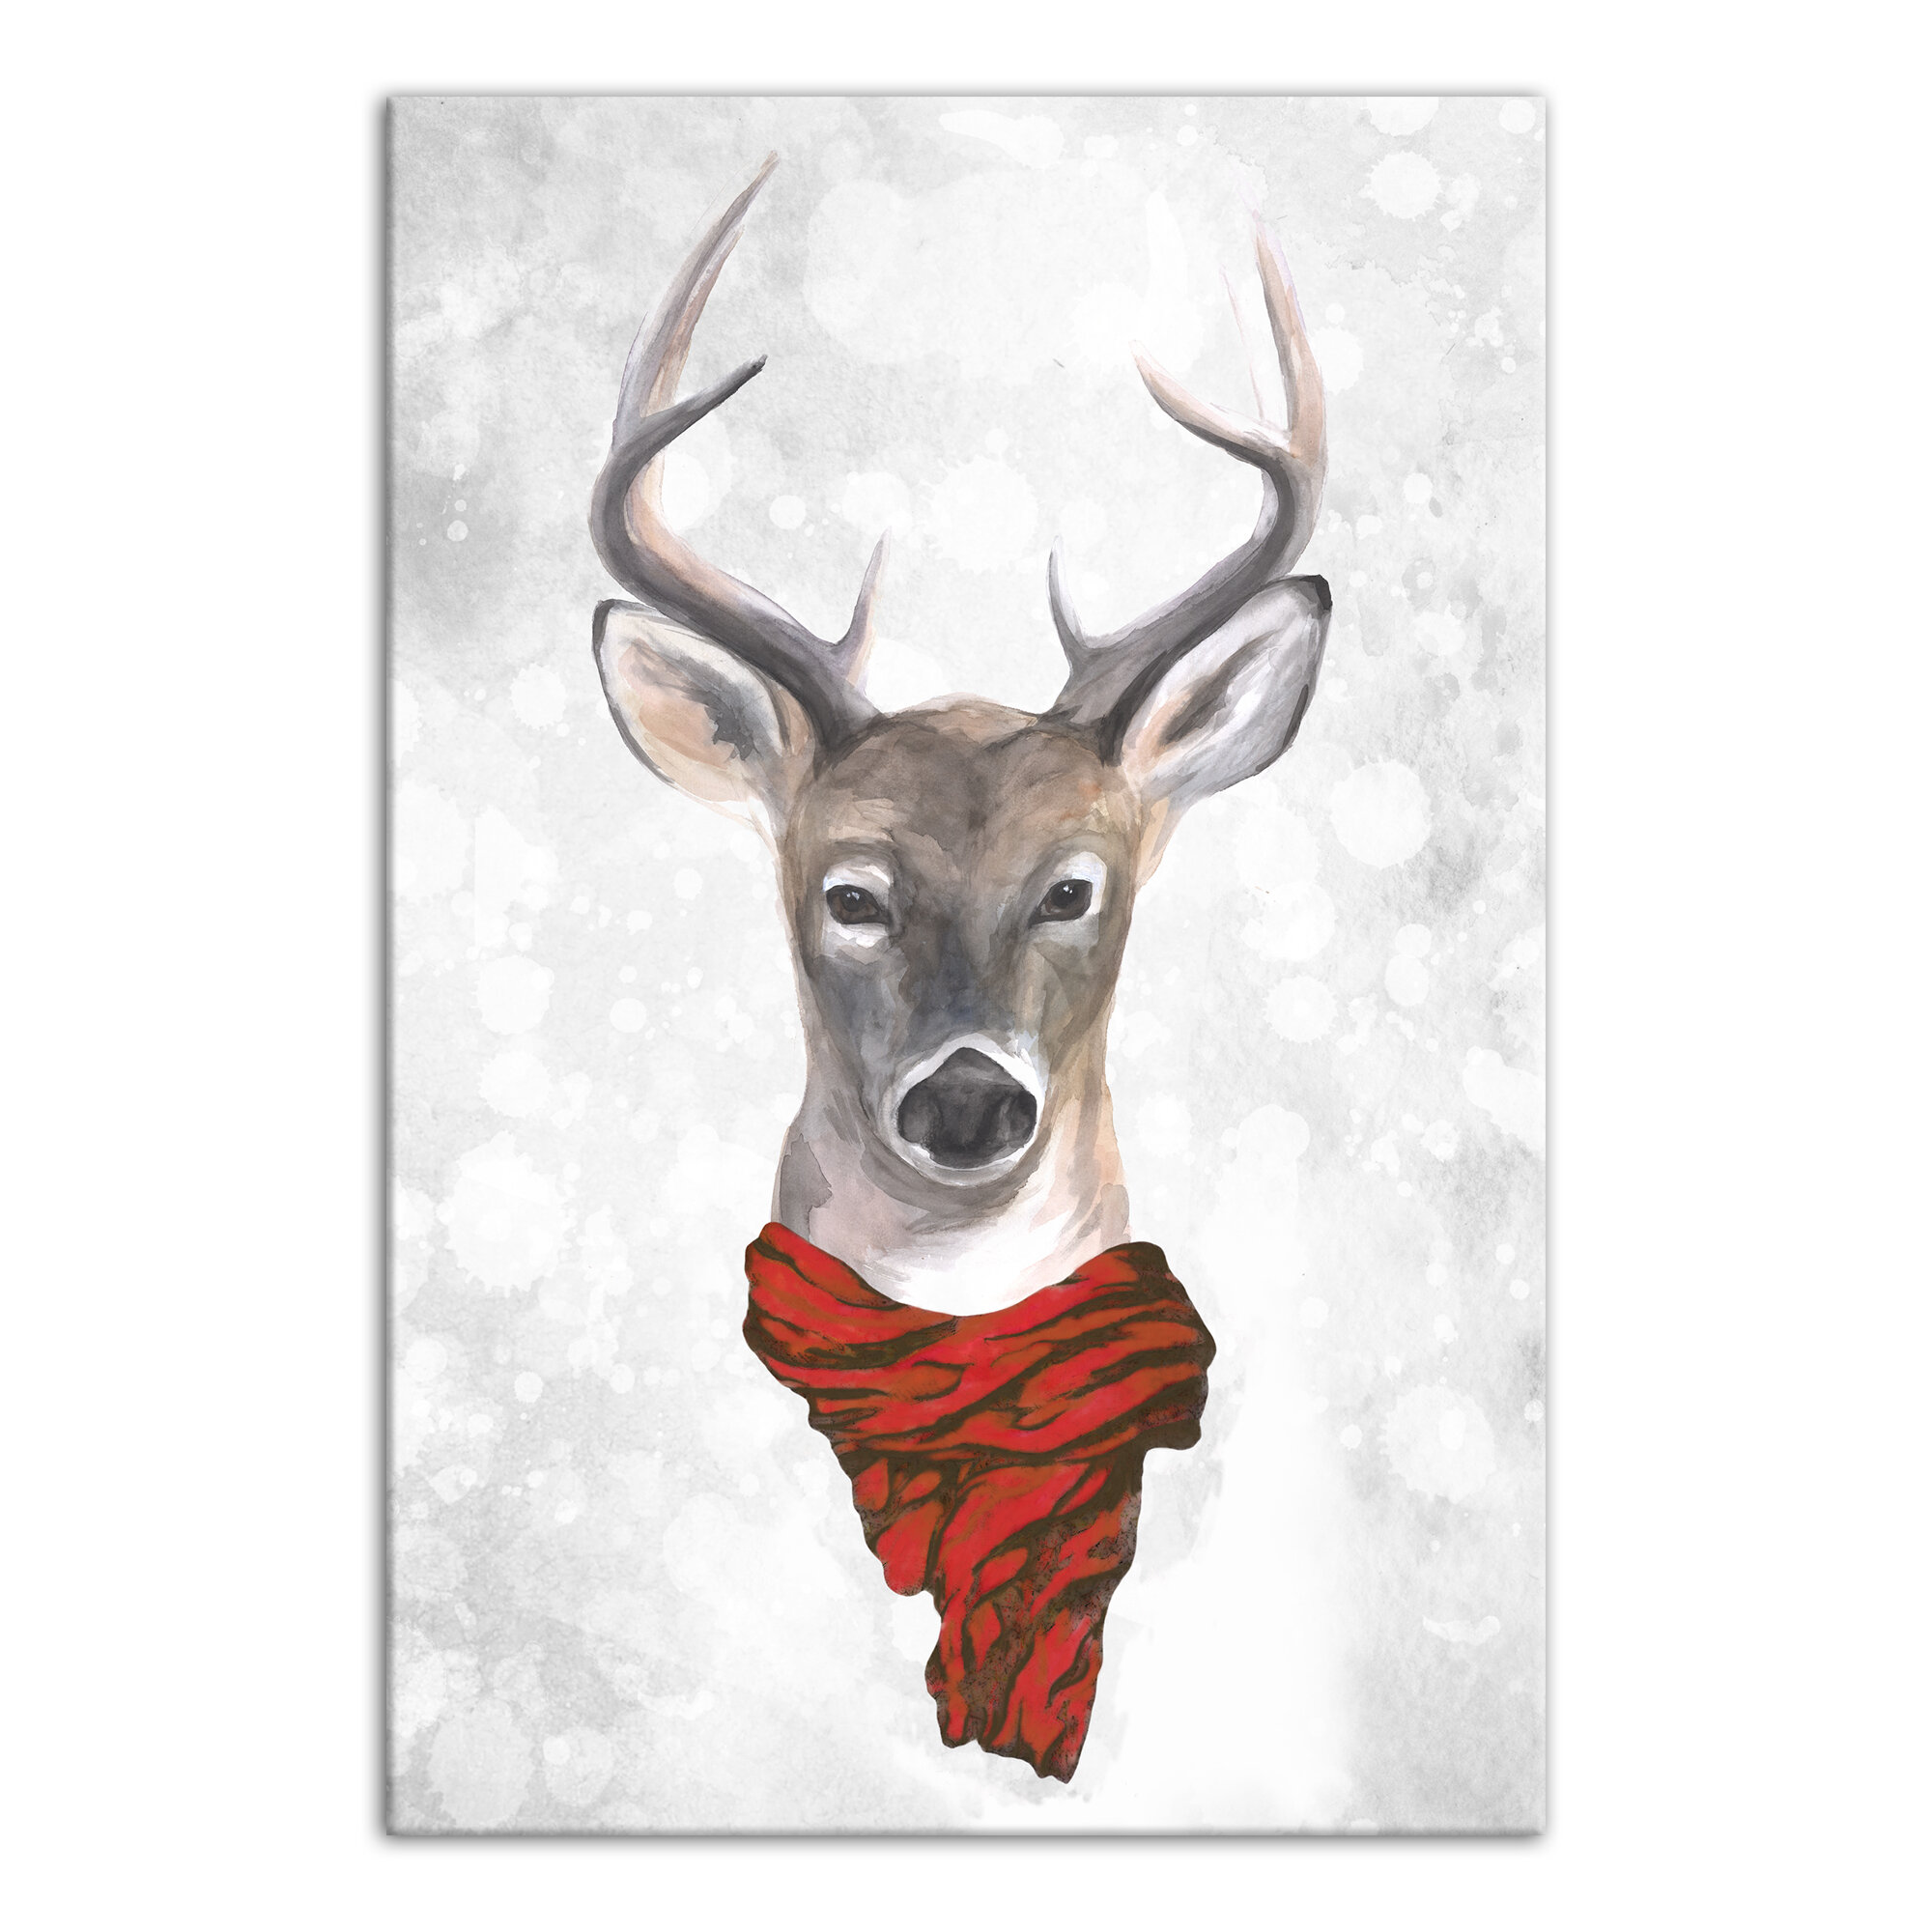 The Holiday Aisle Reindeer Wearing Red Scarf Graphic Art Print